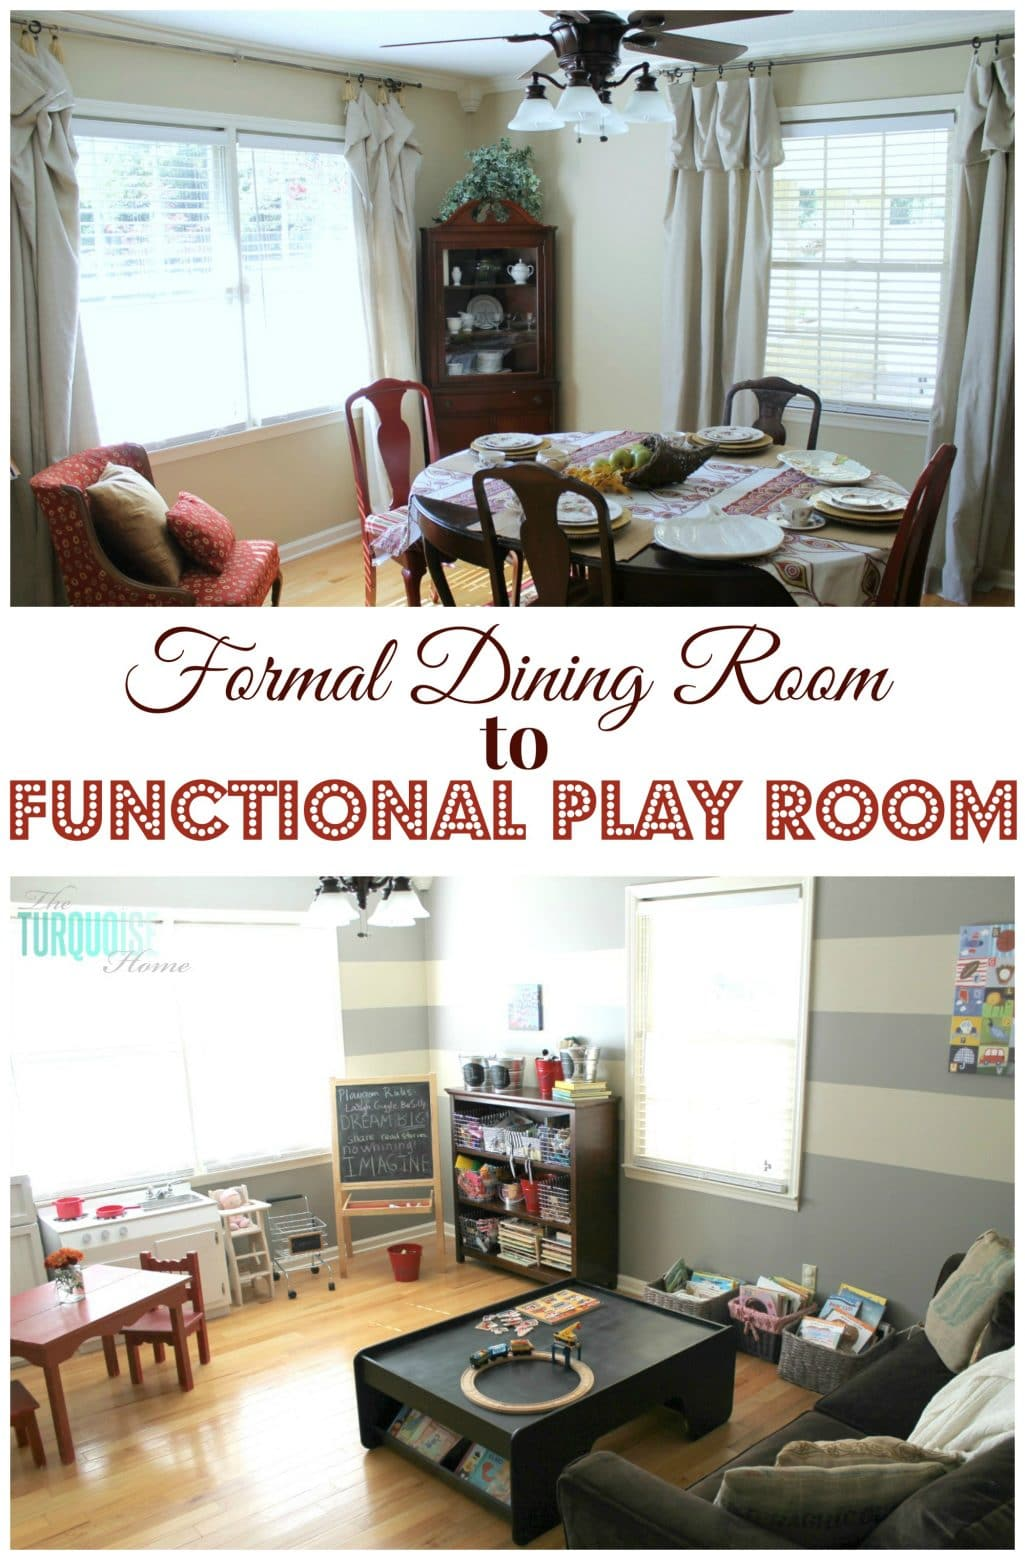 Formal Dining Room To Functional Play Room The Turquoise